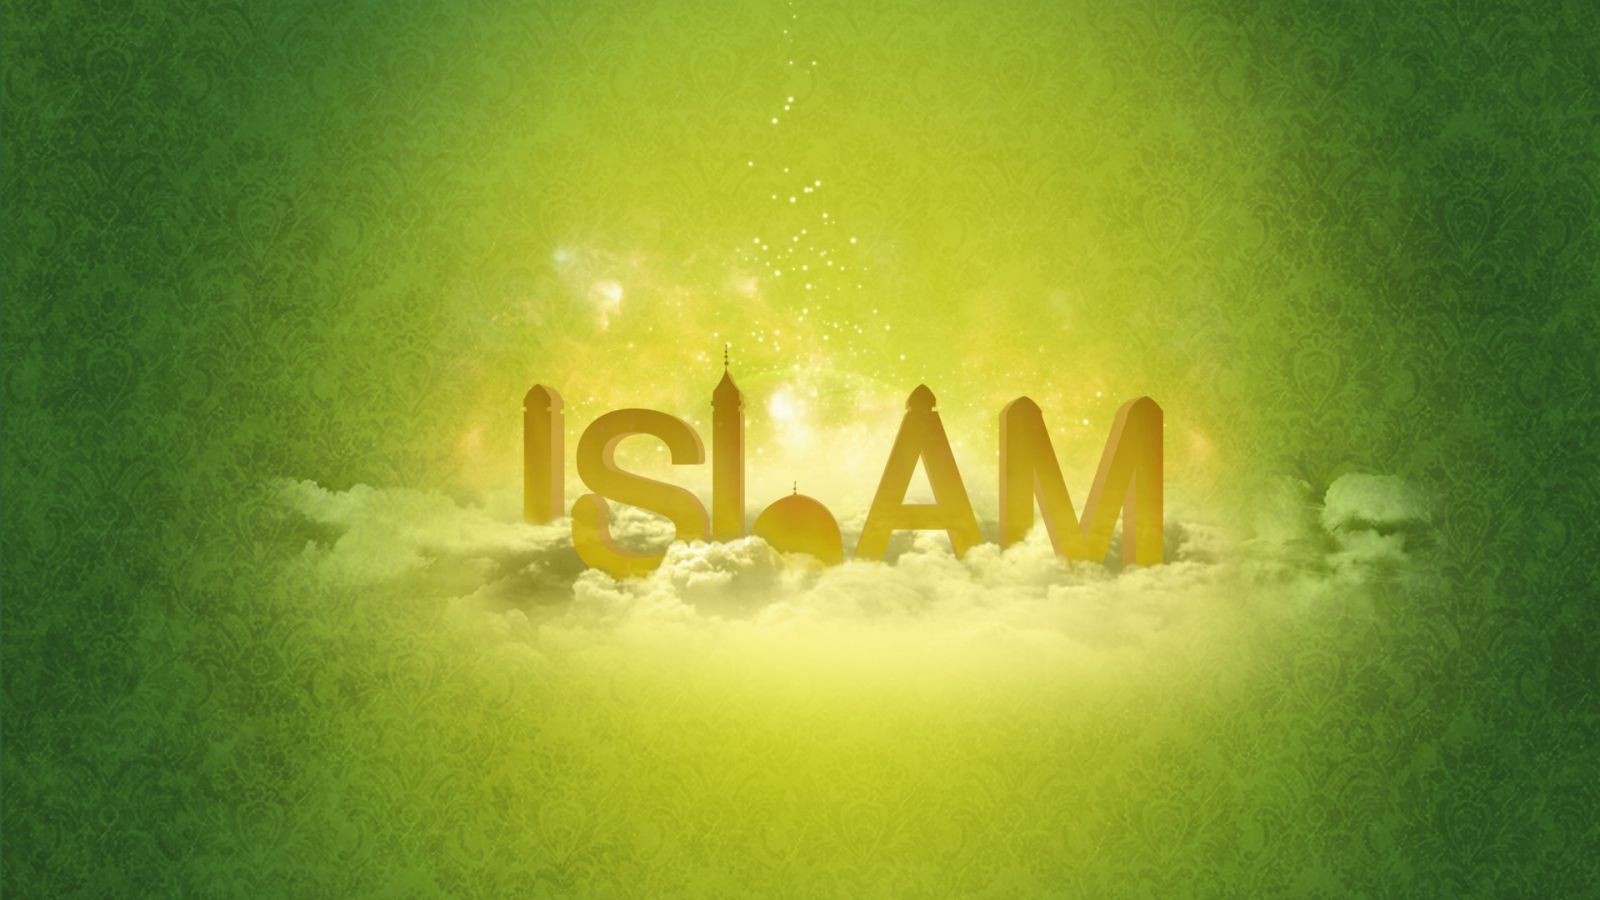 Islam: between Ideals and Realities